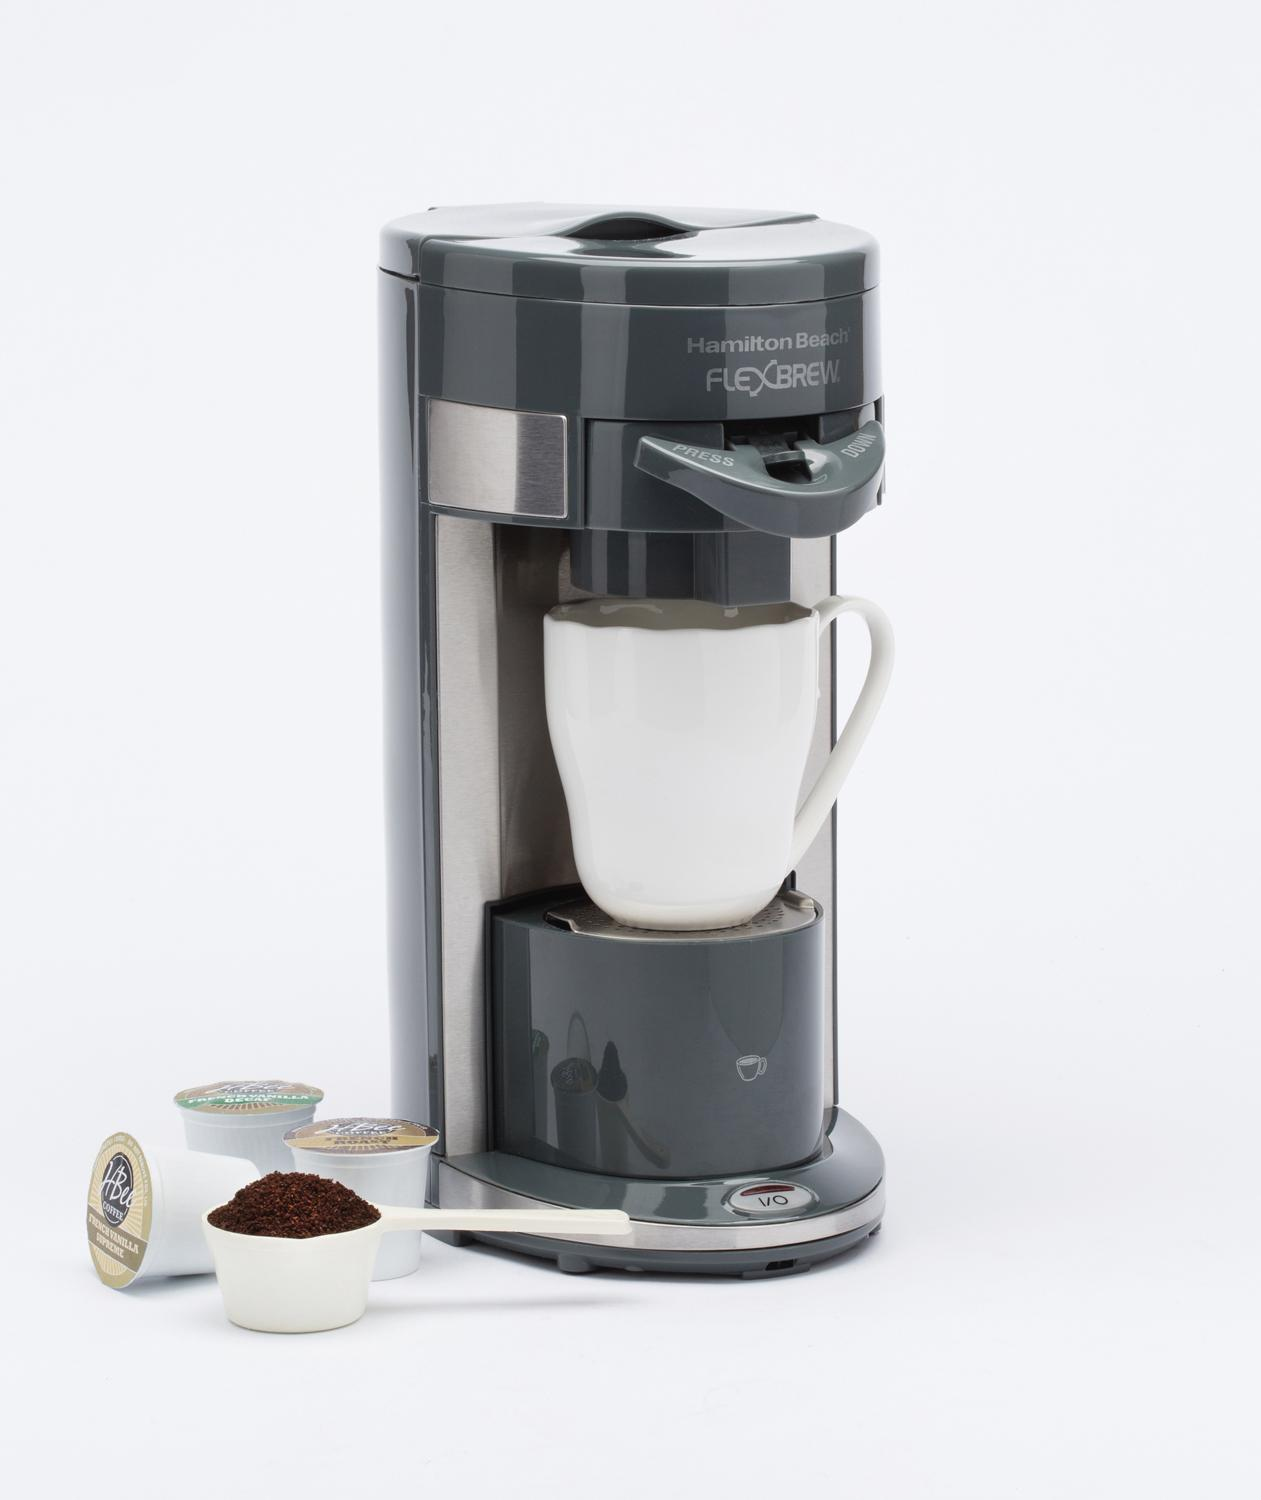 Hamilton Beach Coffee Maker Flex Brew Single